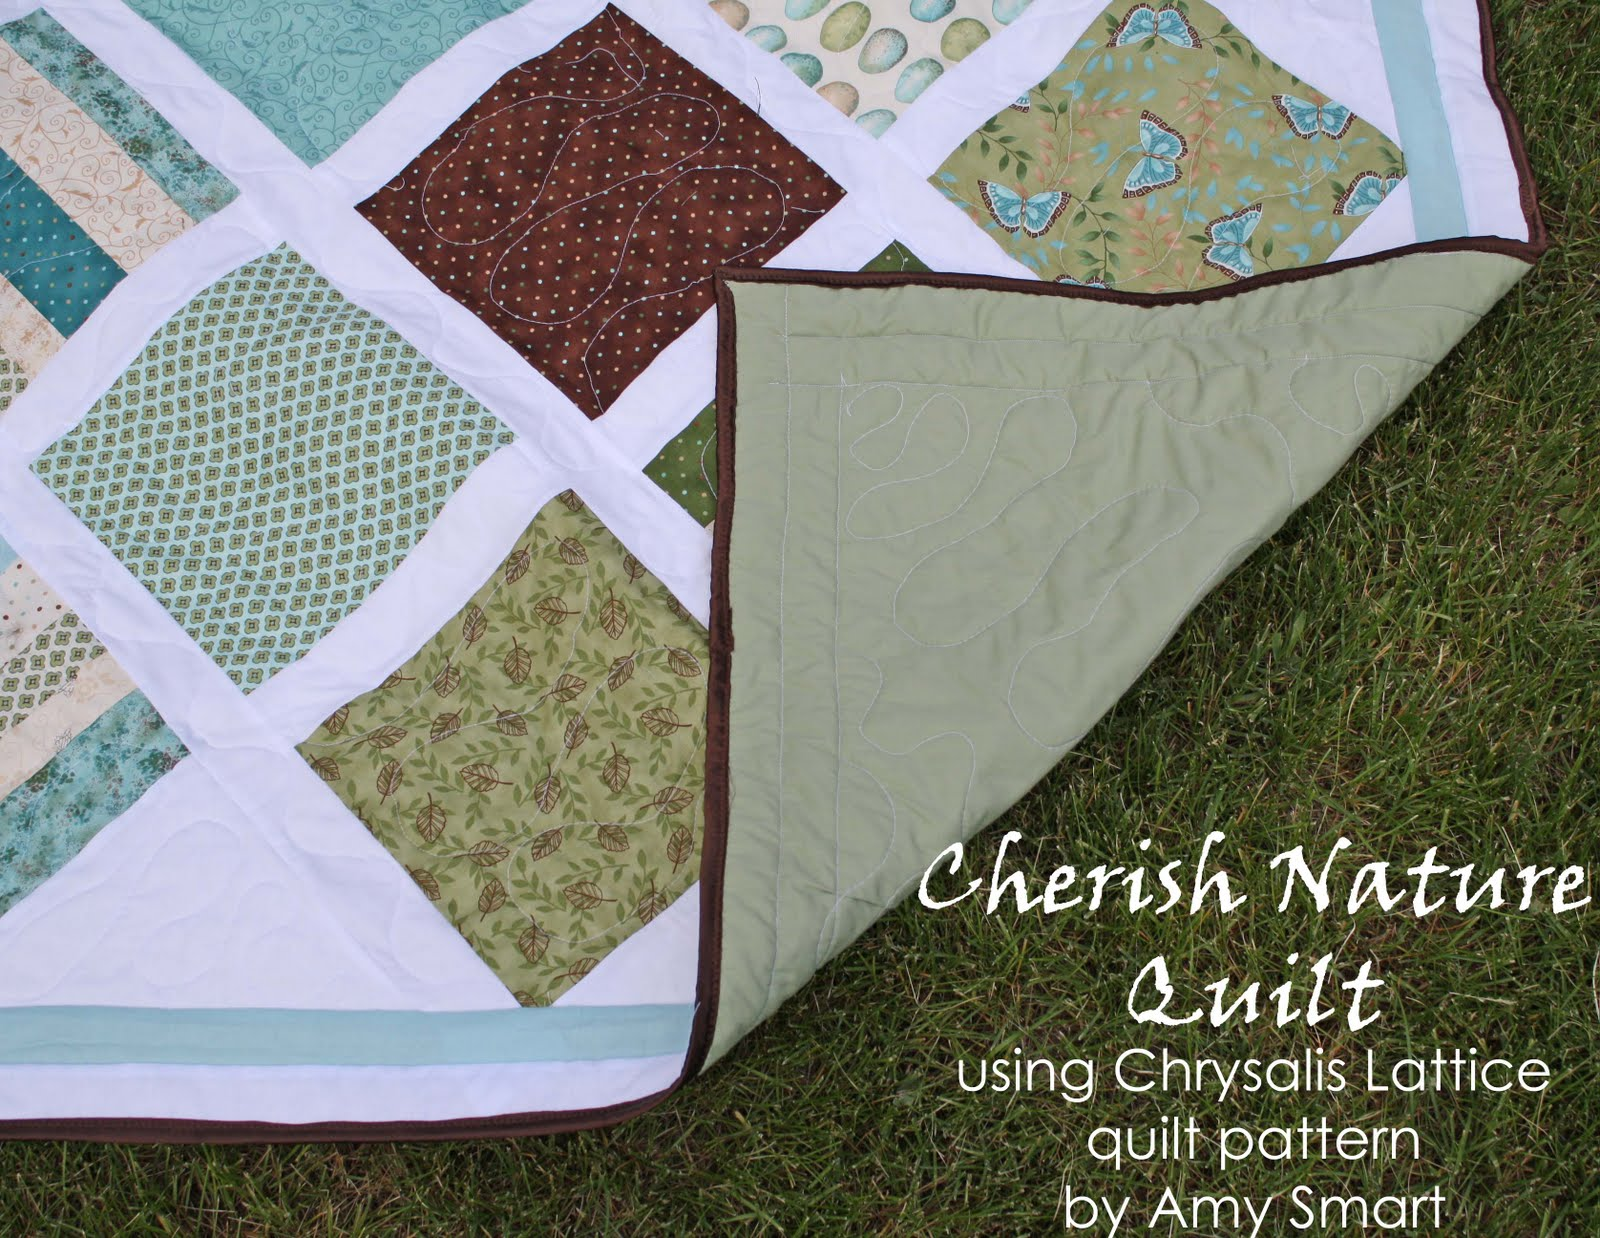 Running With Scissors: Cherish Nature Quilt